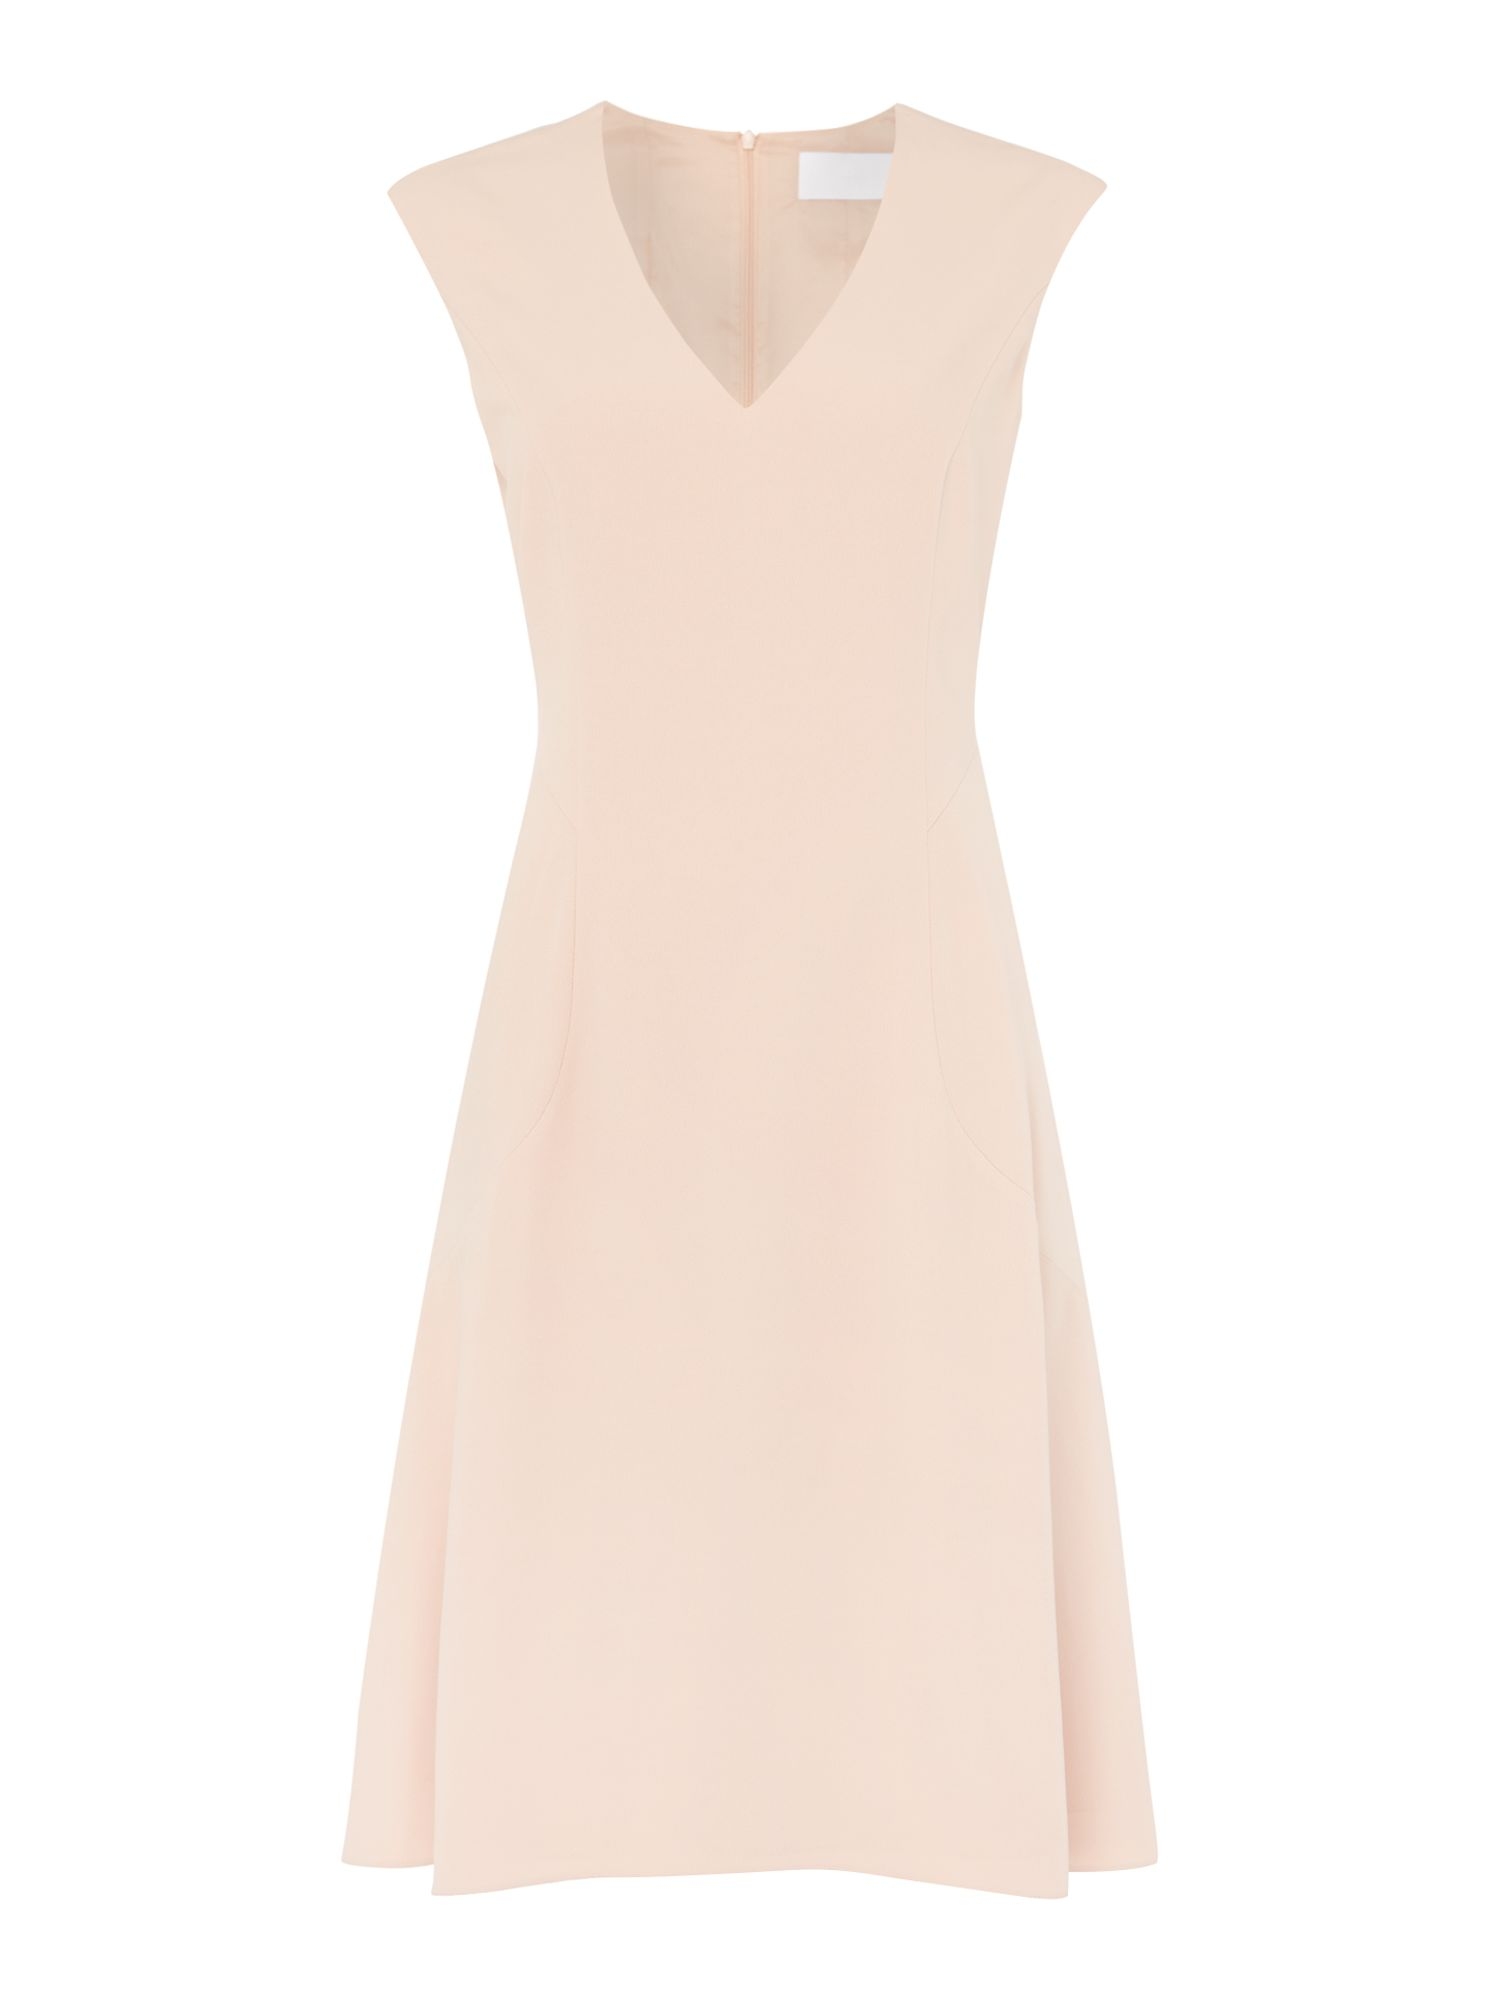 Hugo Boss cap sleeve v neck dress with flared skirt, Pink